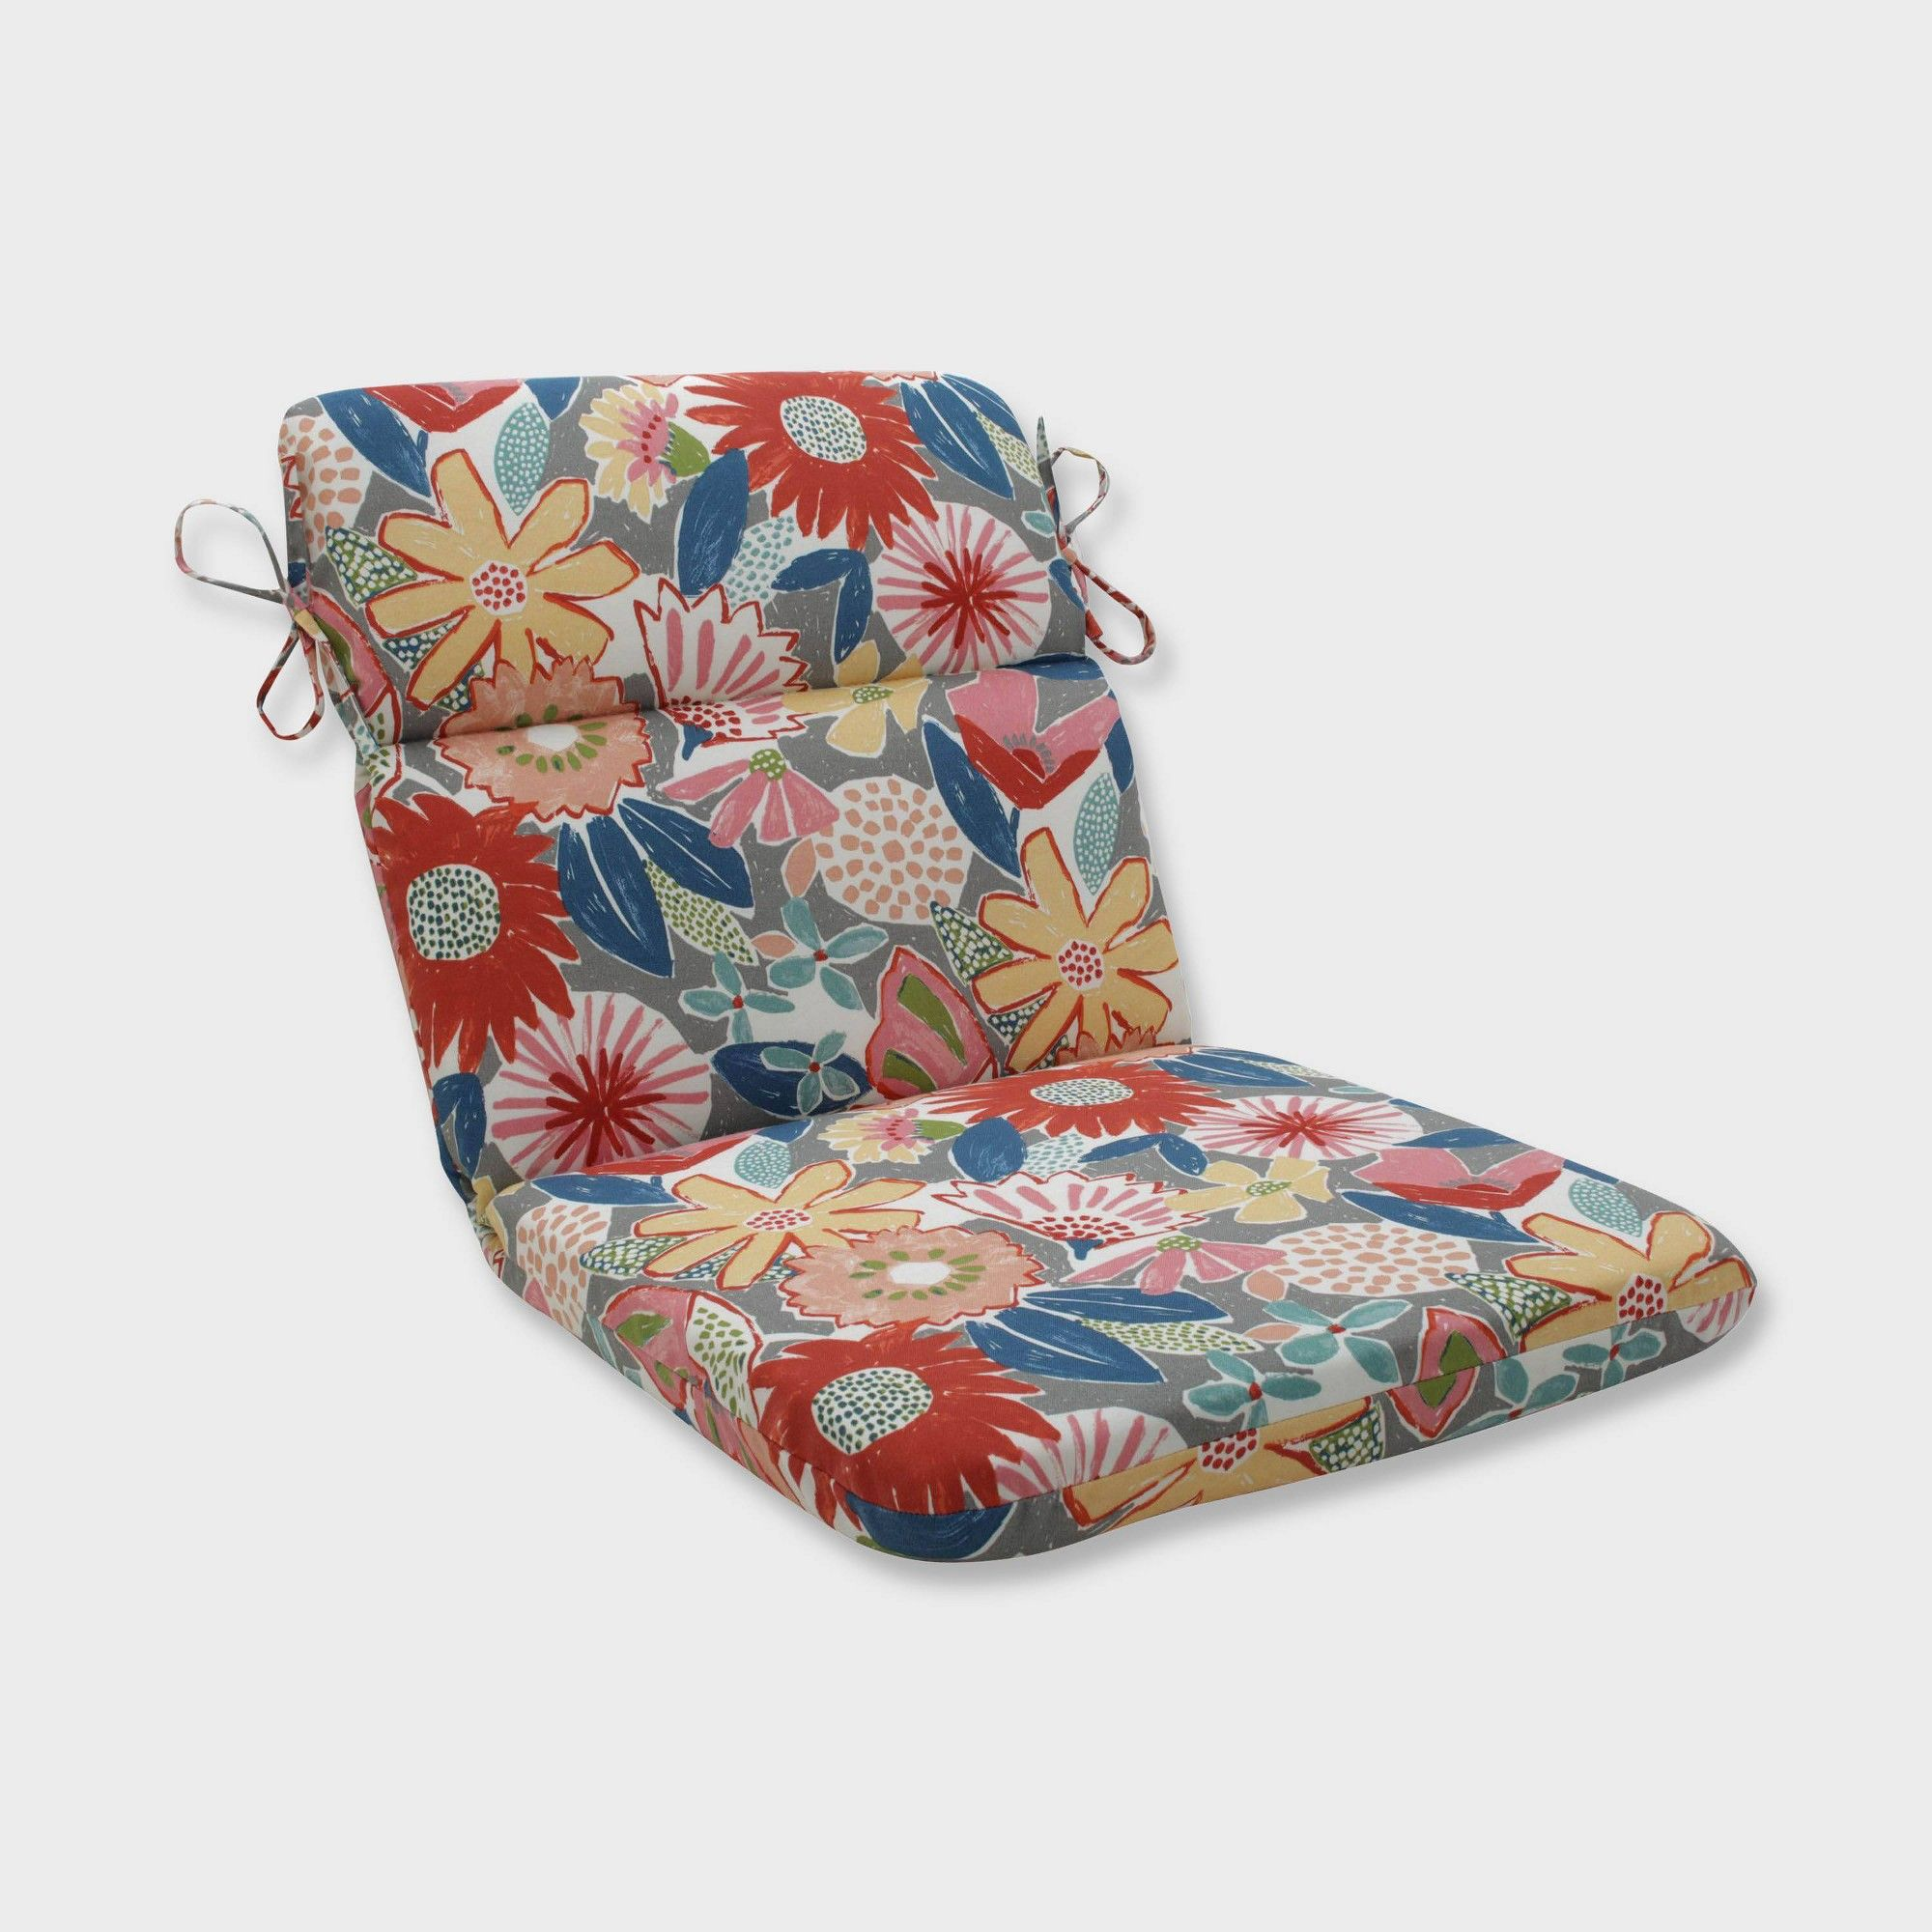 Terrific Catching Rays Poppy Rounded Corners Outdoor Chair Cushion Beutiful Home Inspiration Aditmahrainfo